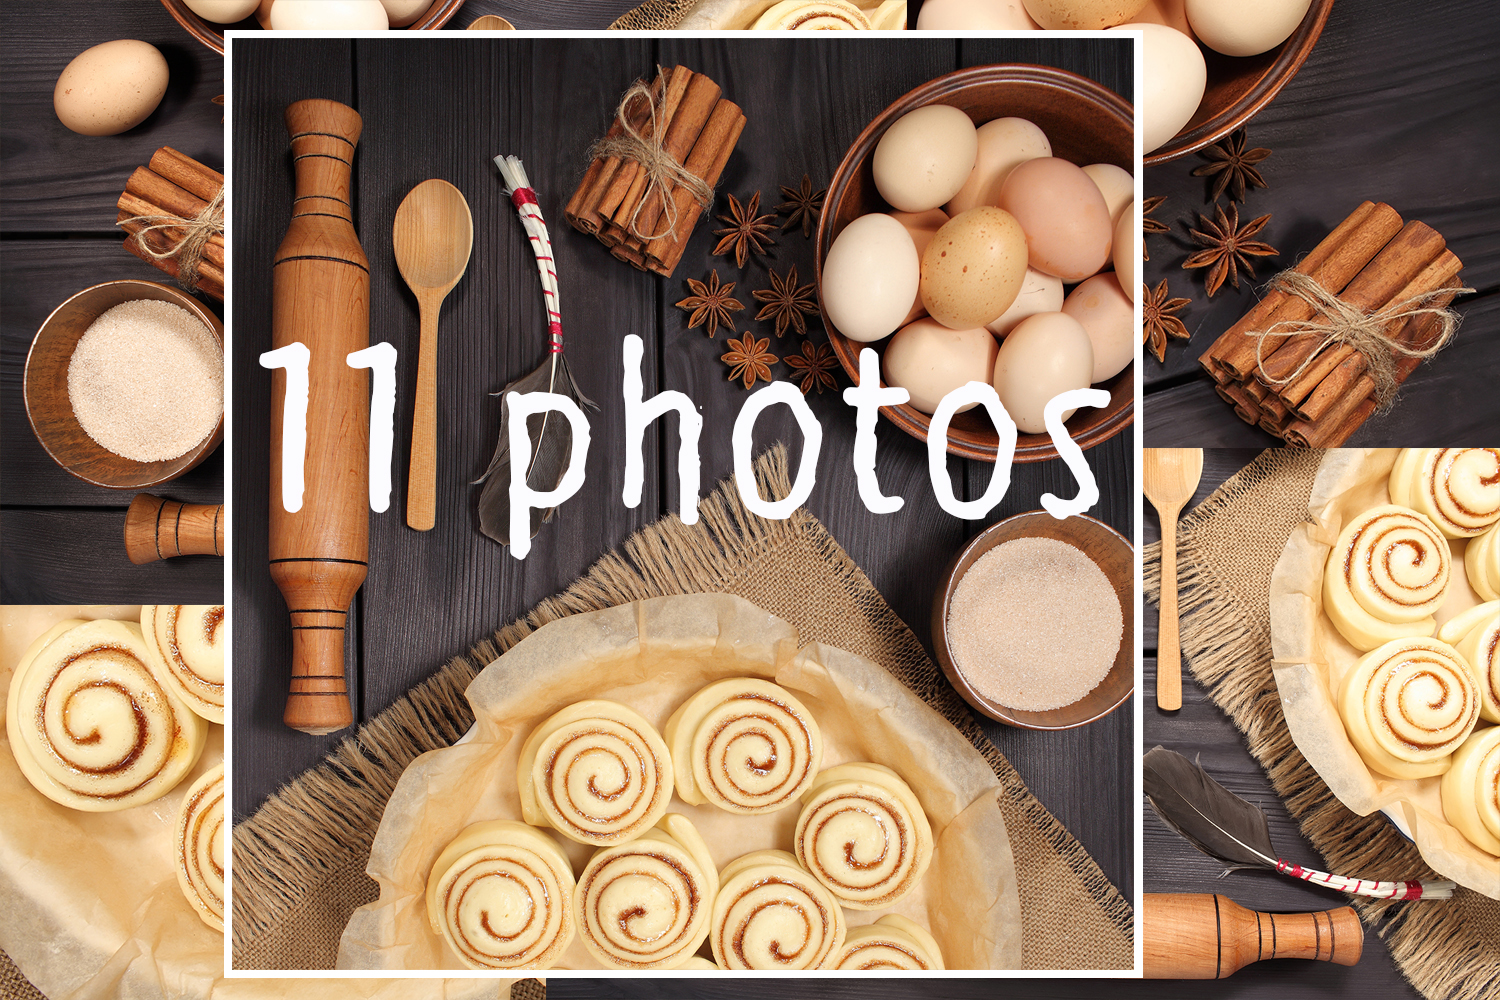 Set of 11 photos - raw buns: cinnamon rolls prepared for baking on a background of rustic table example image 1